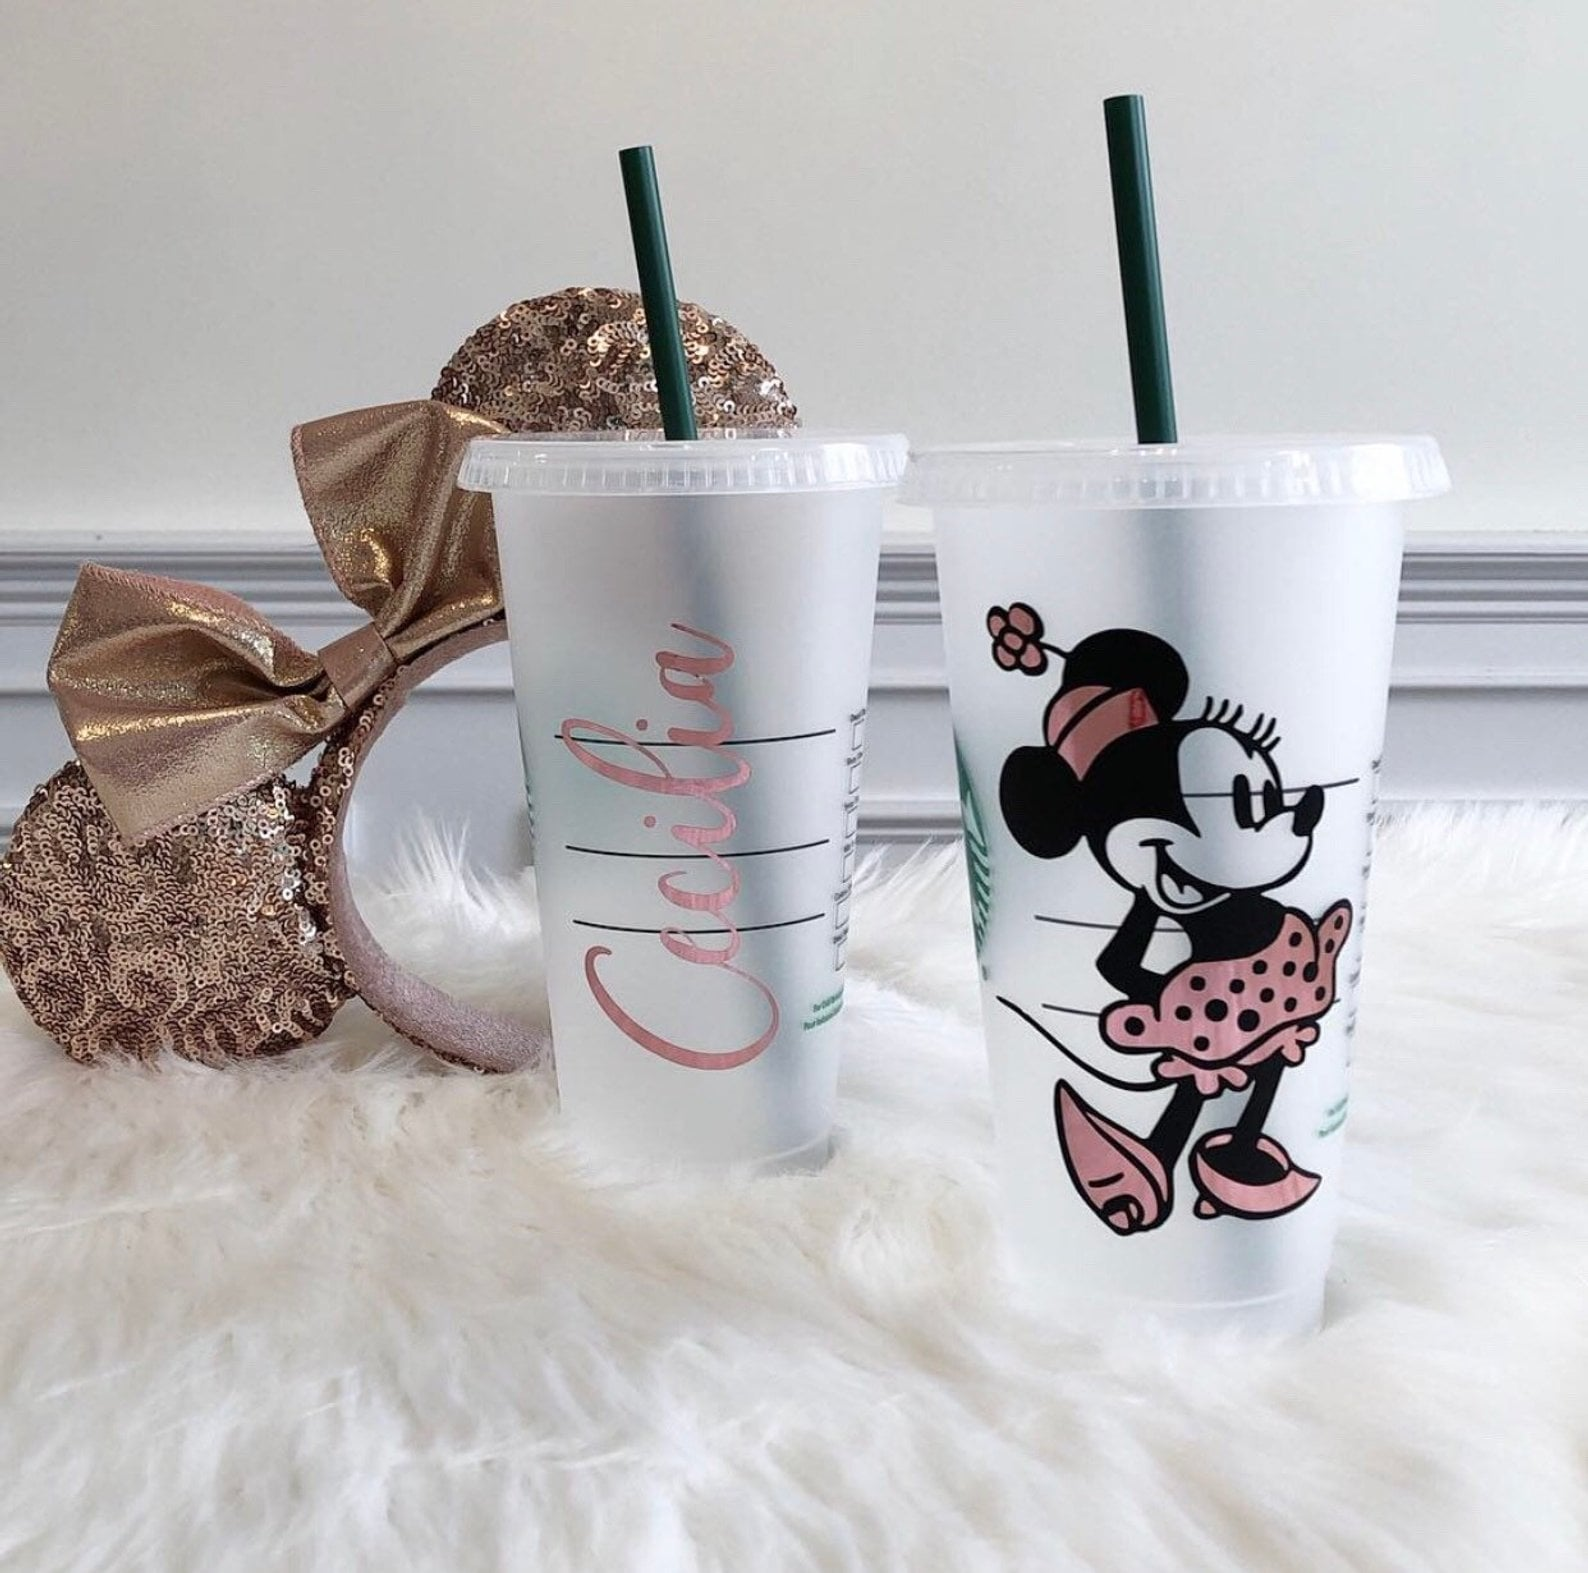 Personalized Disney Iced Coffee Cups From Etsy | POPSUGAR